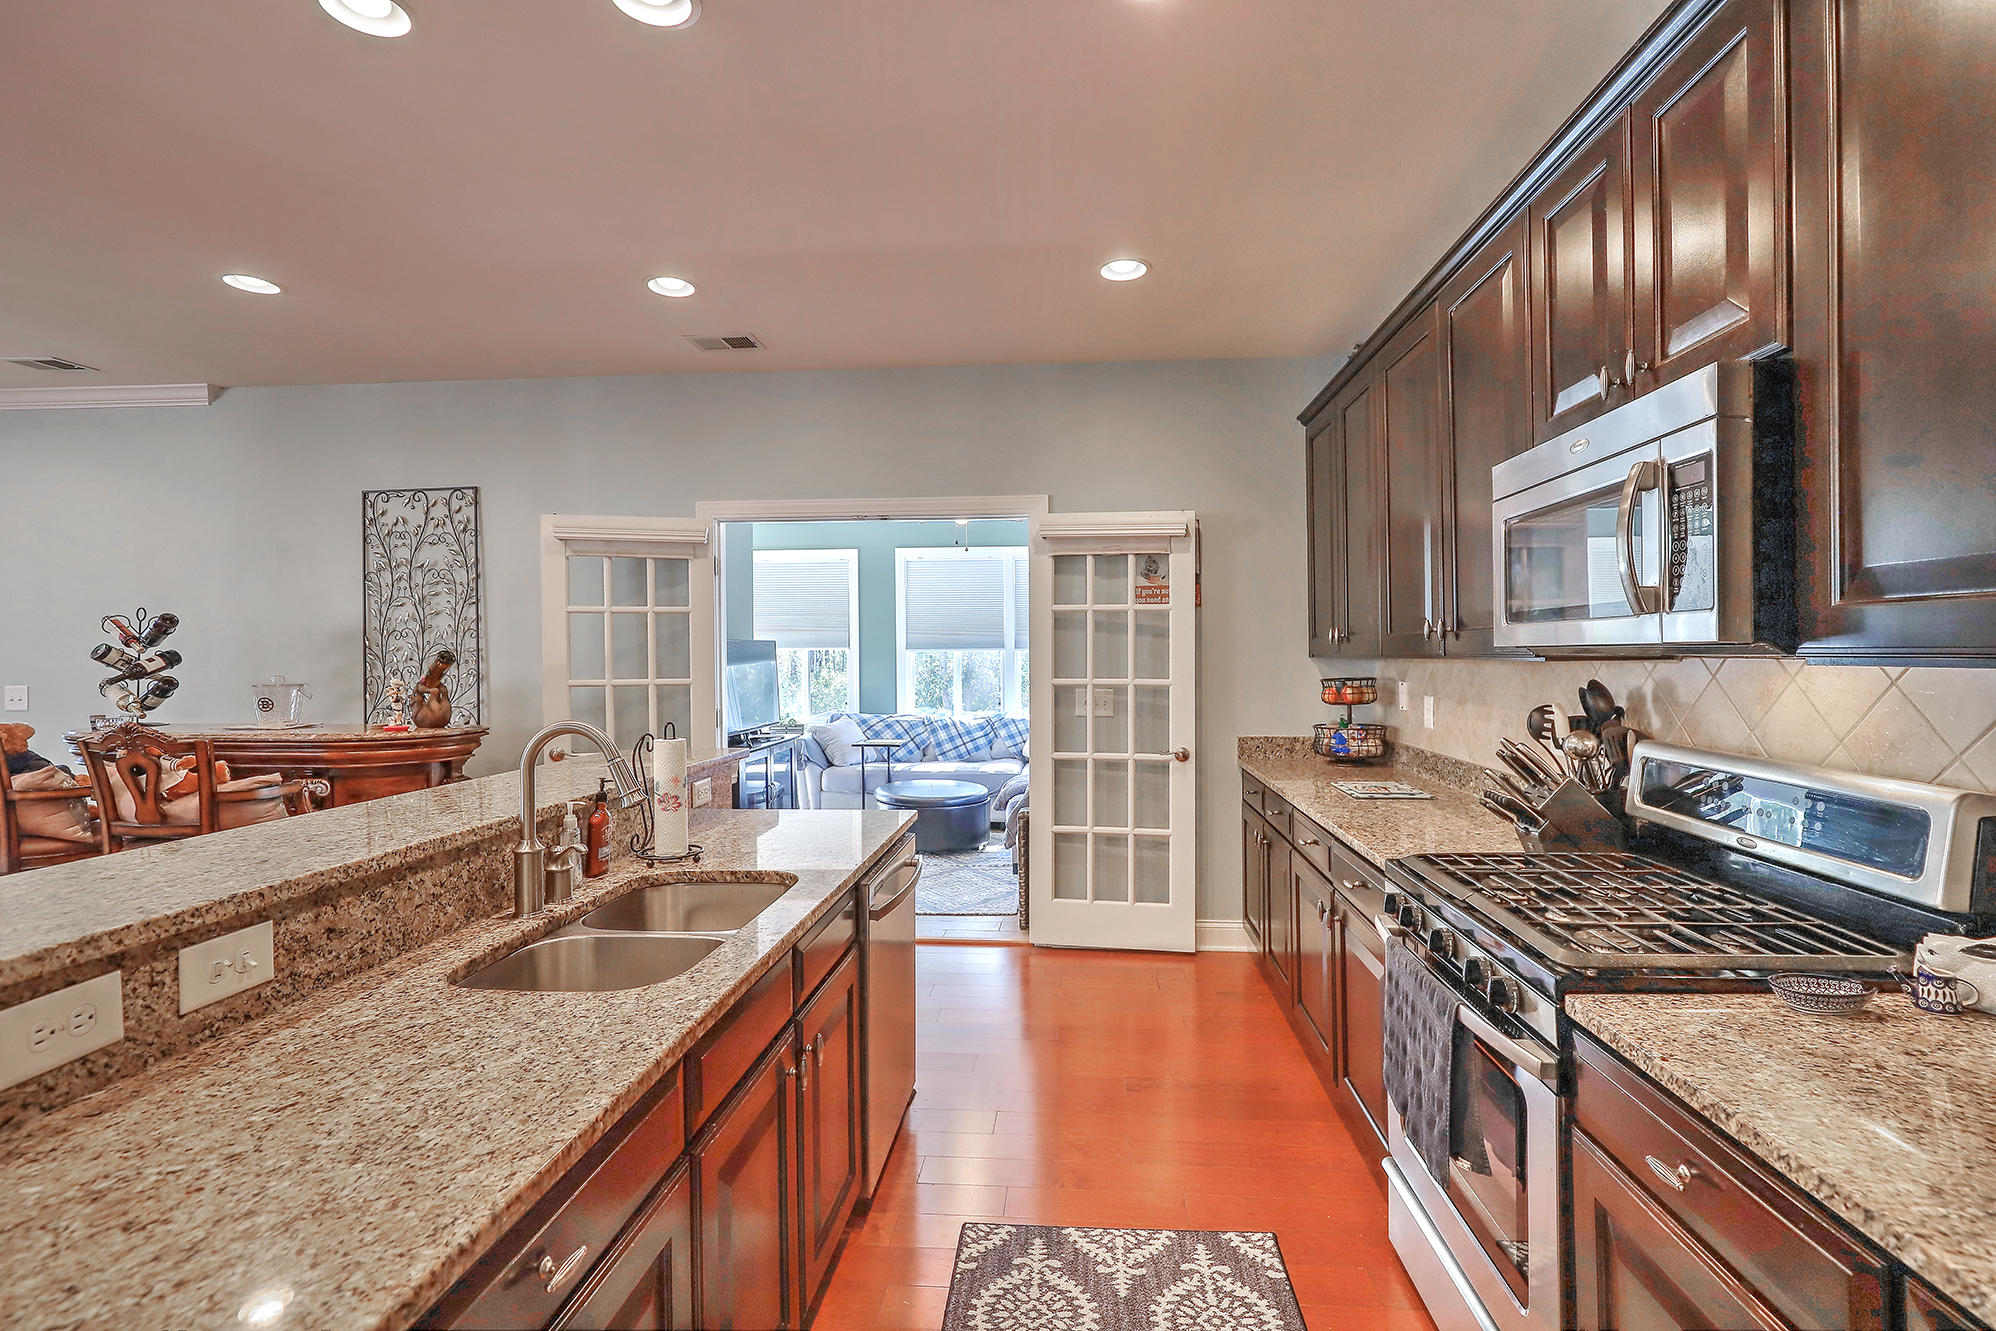 Rivertowne On The Wando Homes For Sale - 2105 Sandy Point, Mount Pleasant, SC - 78